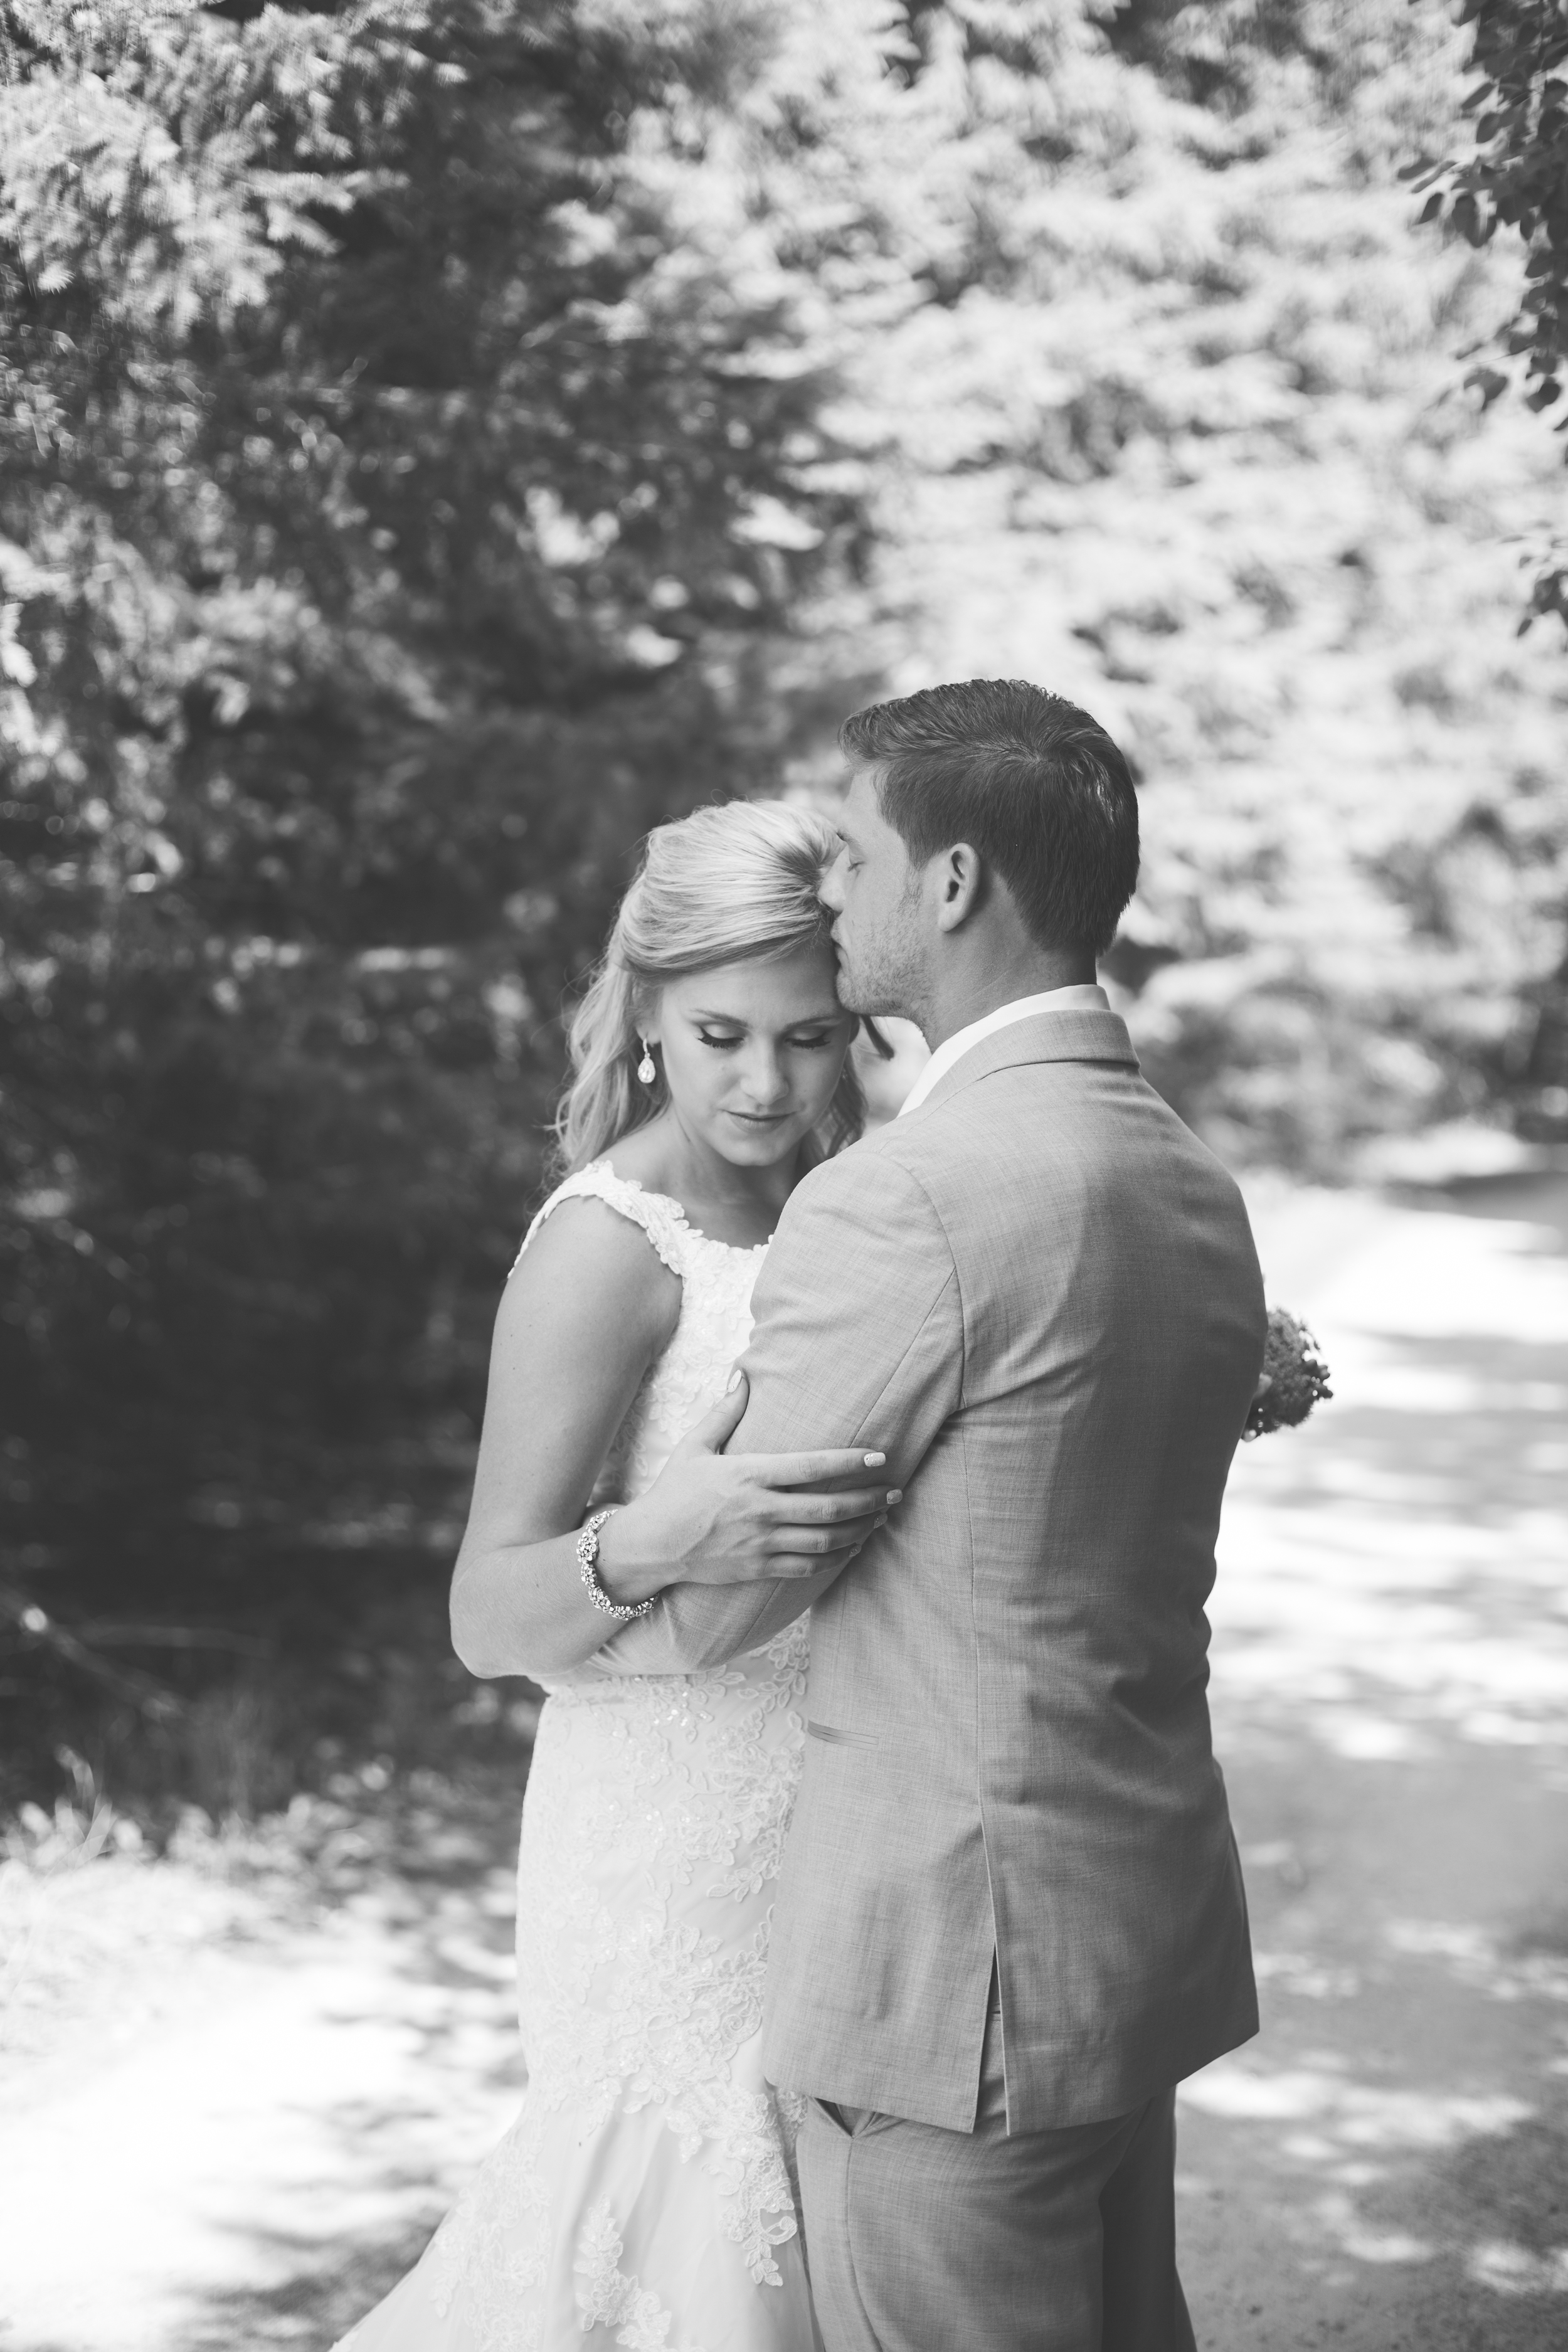 Bride and groom embracing in black and white portrait for wedding at Echo Valley in Wisconsin